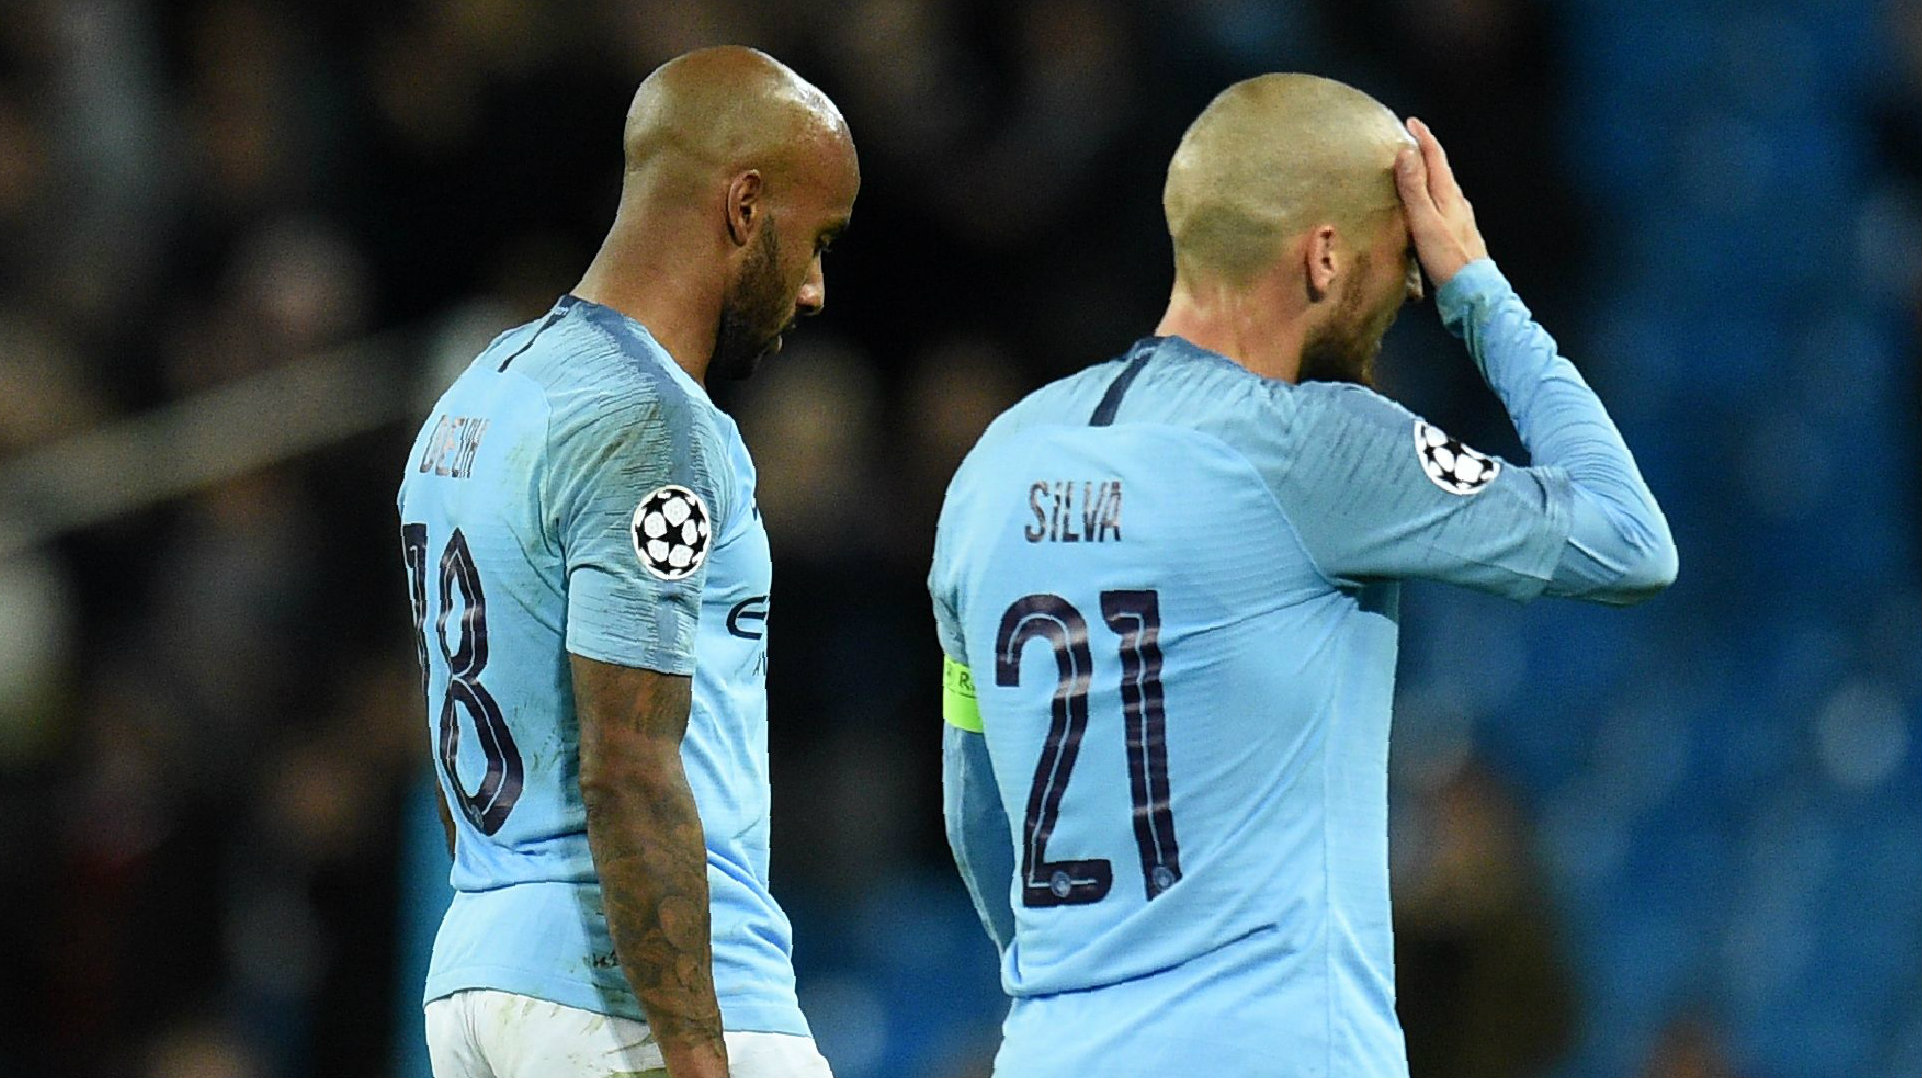 Fabian Delph David Silva Manchester City Lyon Champions League 2018-19